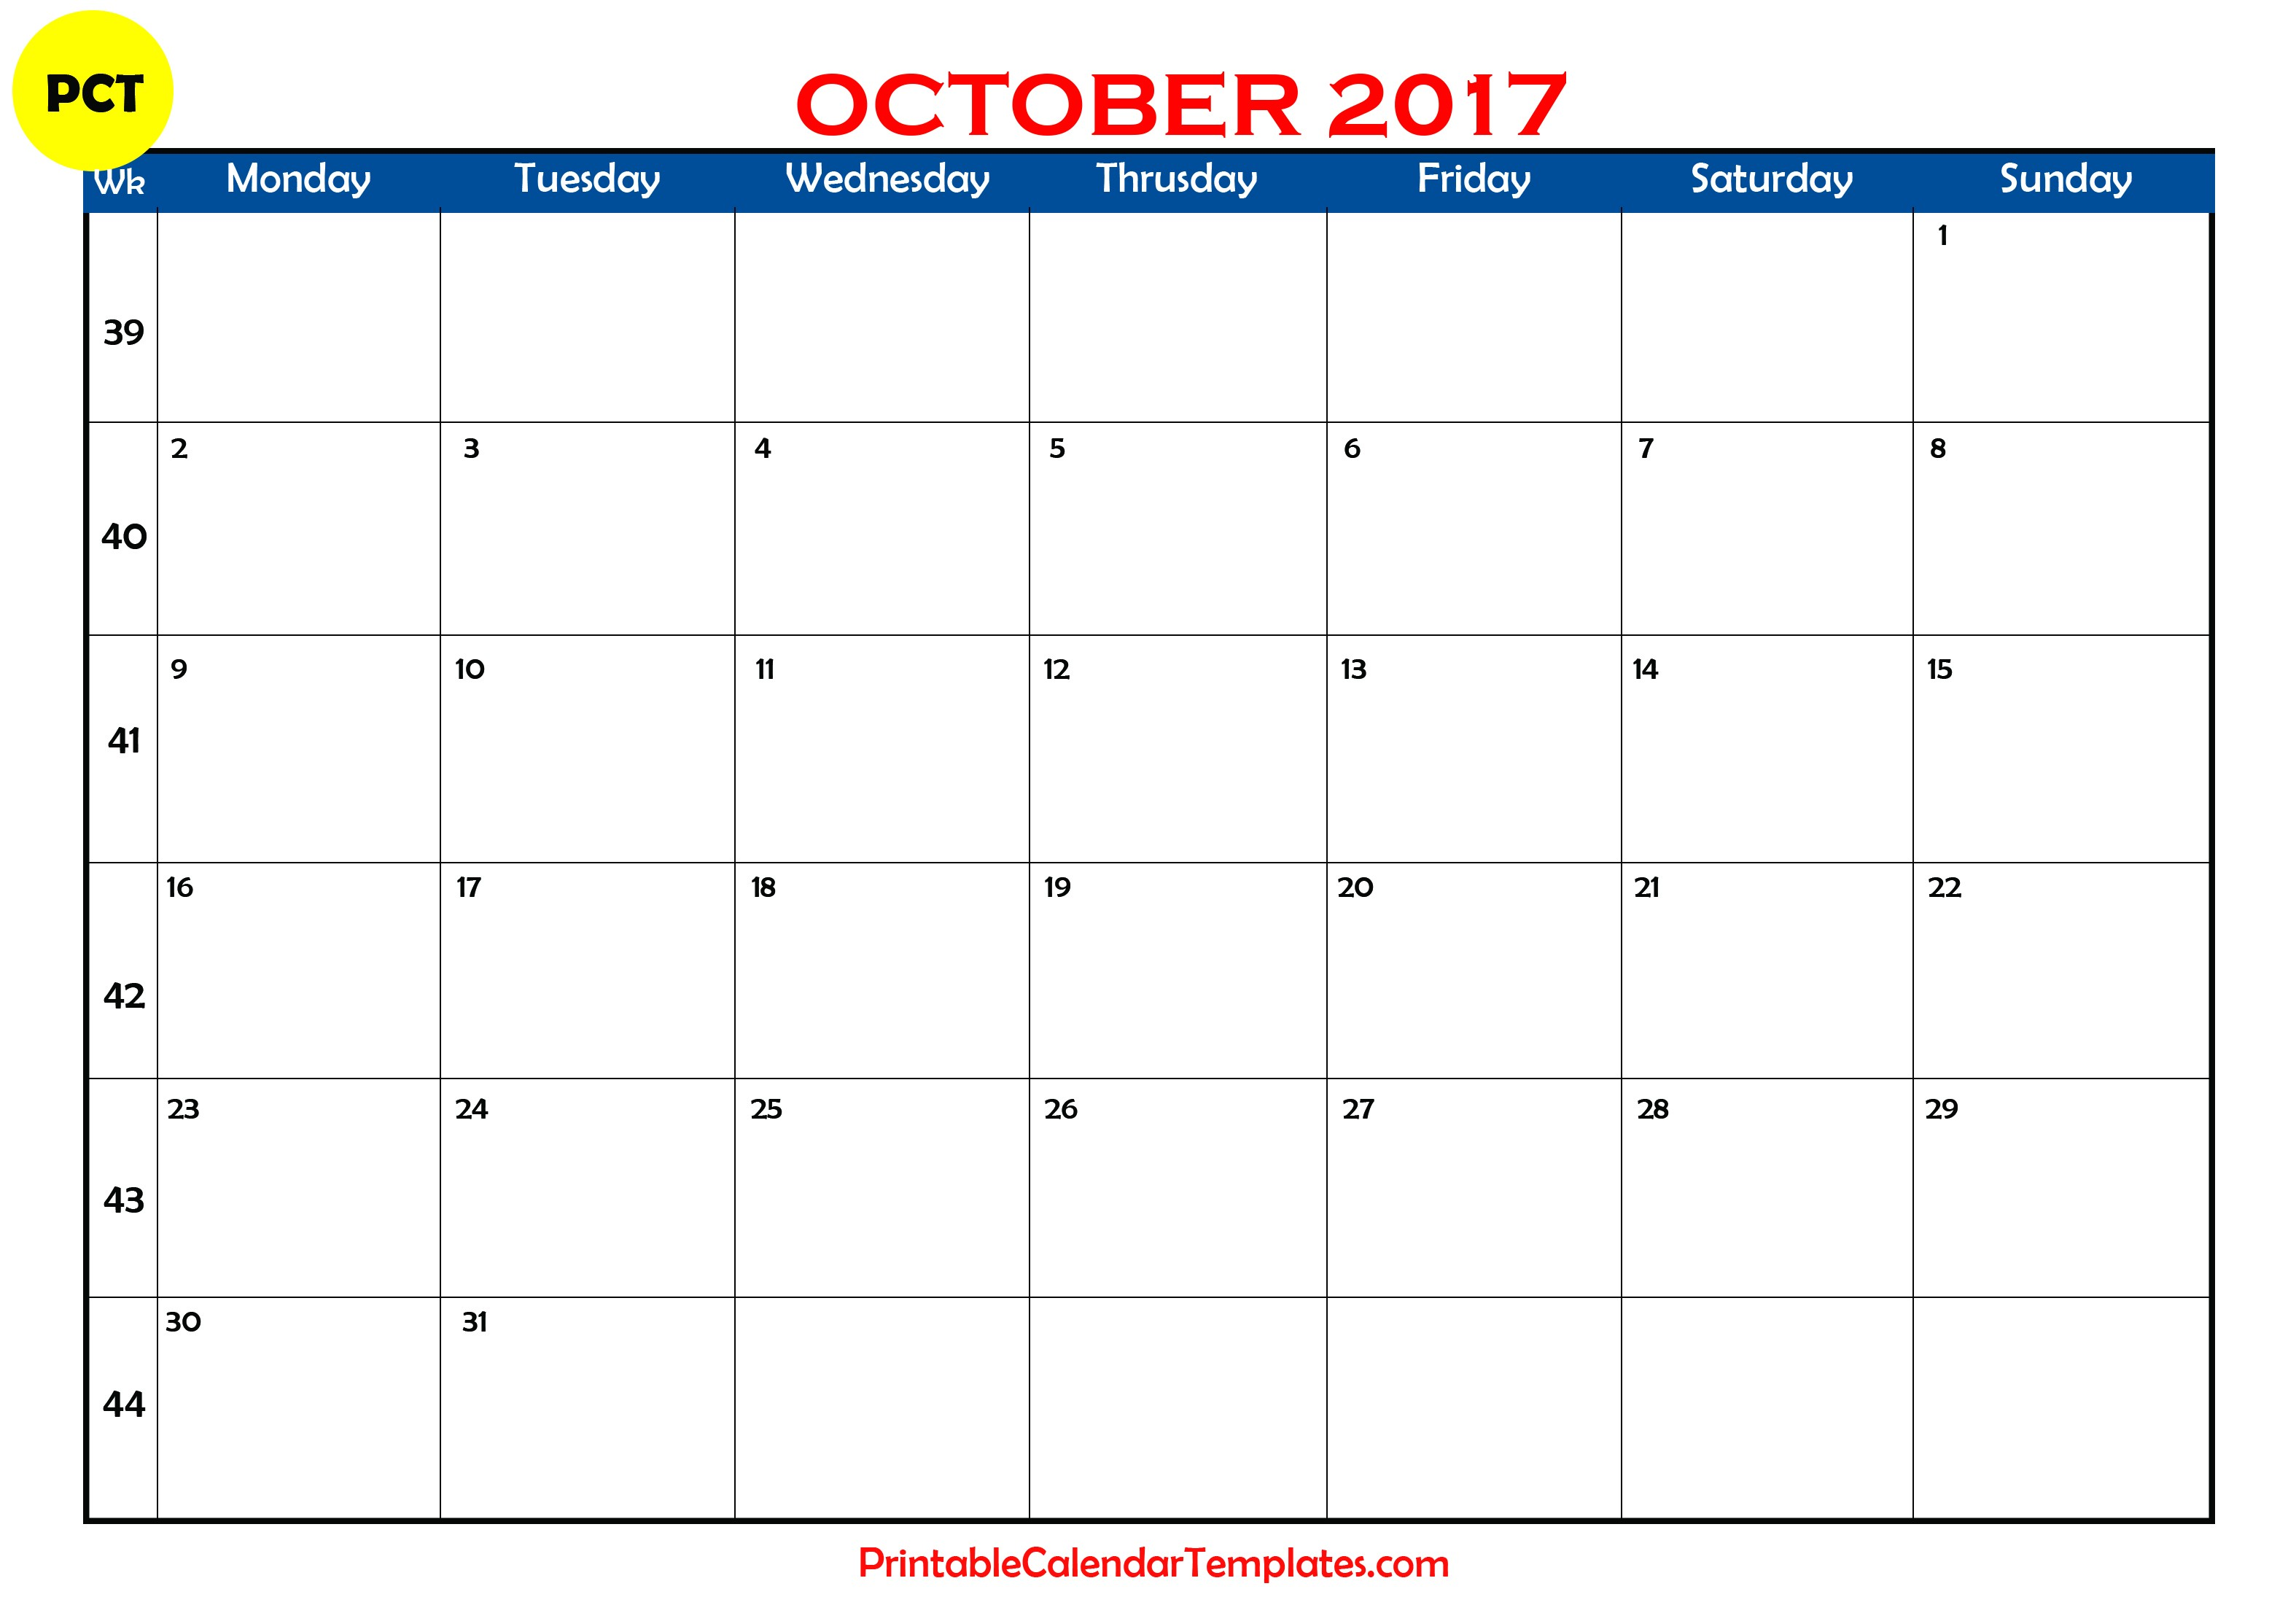 monthly calendar October 2017